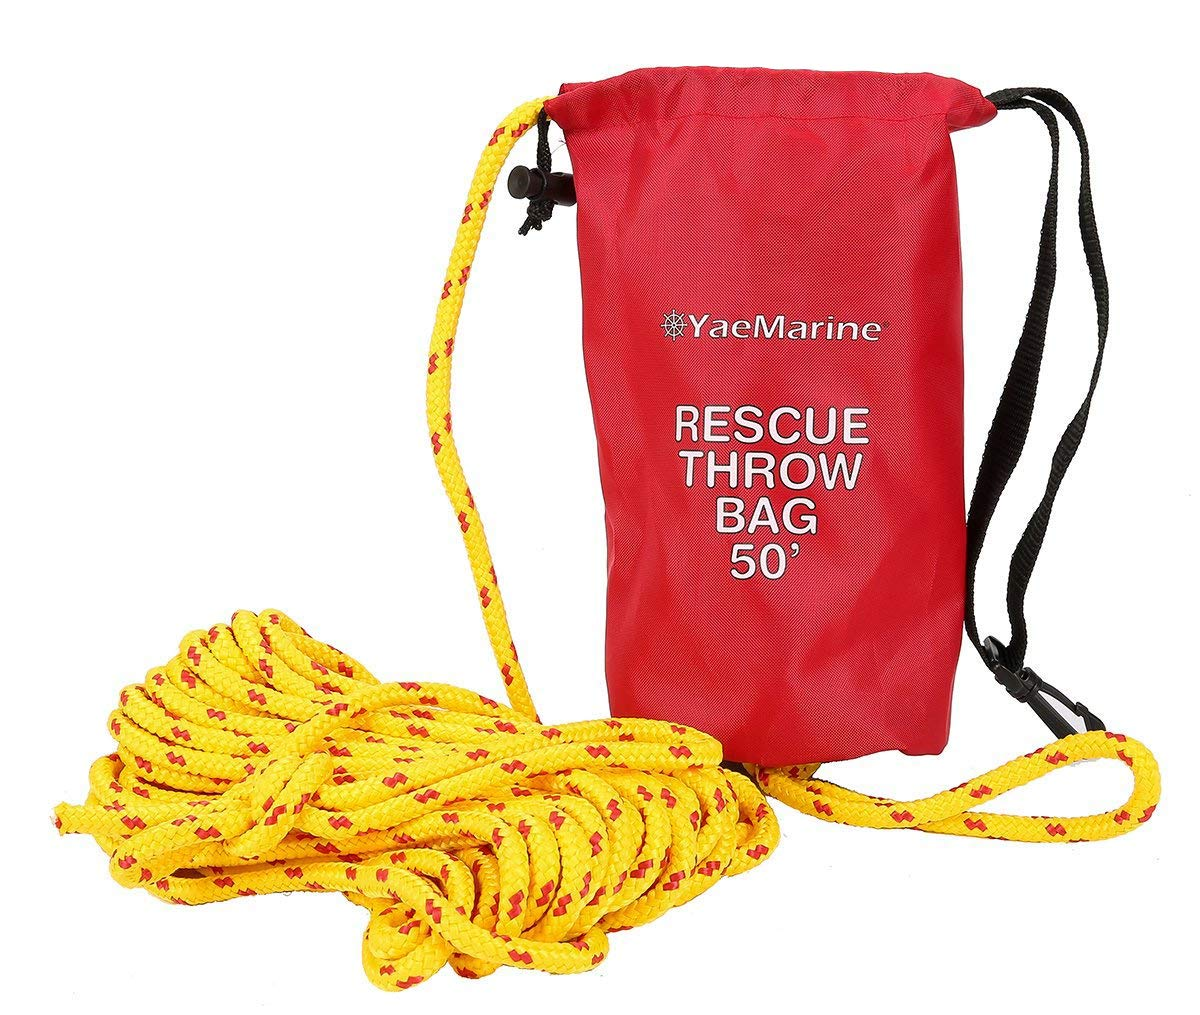 YaeMarine Rescue Throw Bag, Rescue Rope Throw Bag with 50 Feet Floating Rope for Boating Kayaking Ice Fishing Sailing